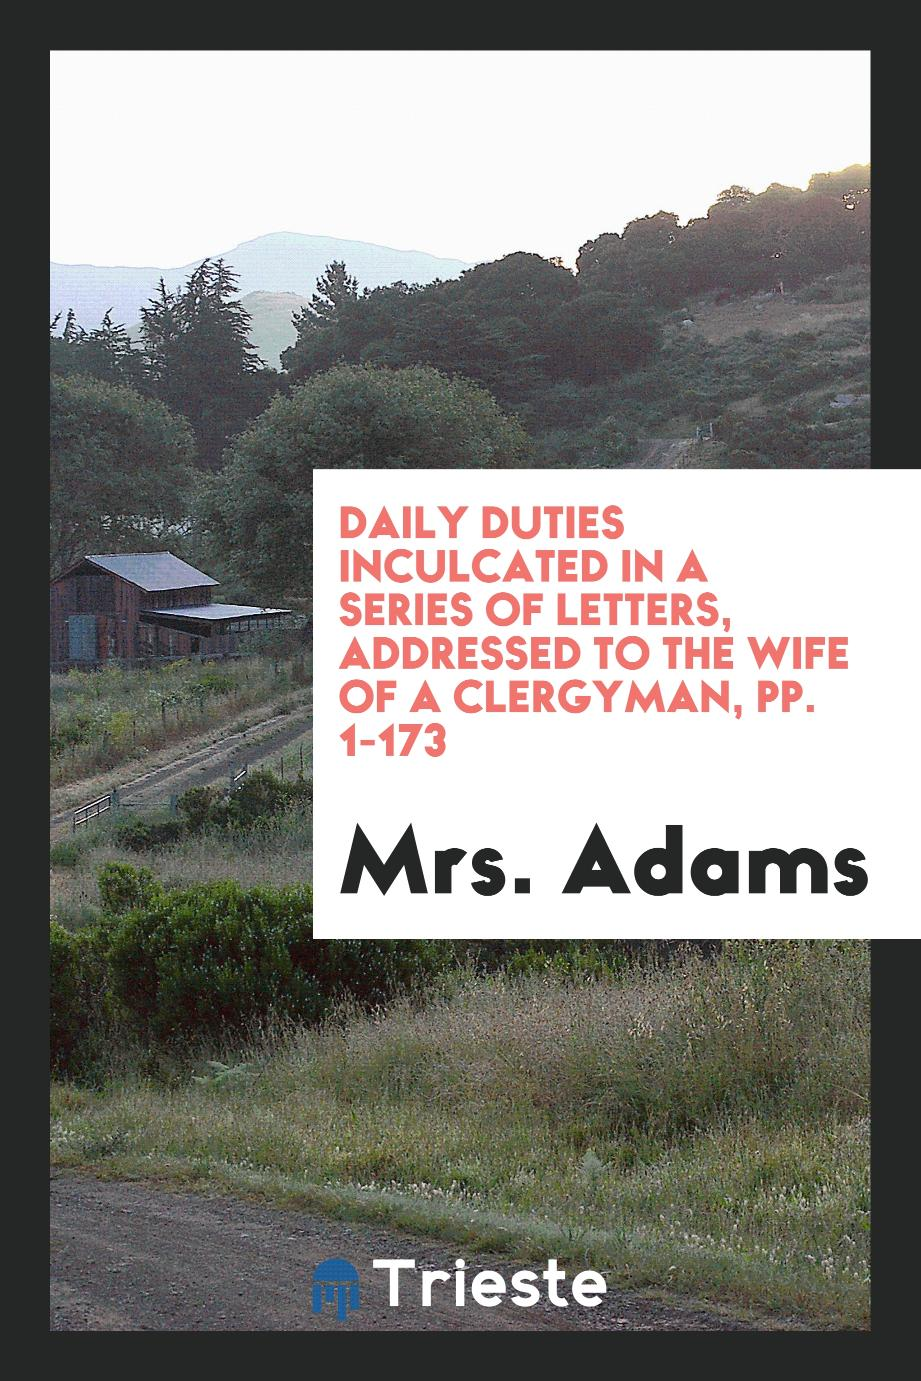 Daily Duties Inculcated in a Series of Letters, Addressed to the Wife of a Clergyman, pp. 1-173